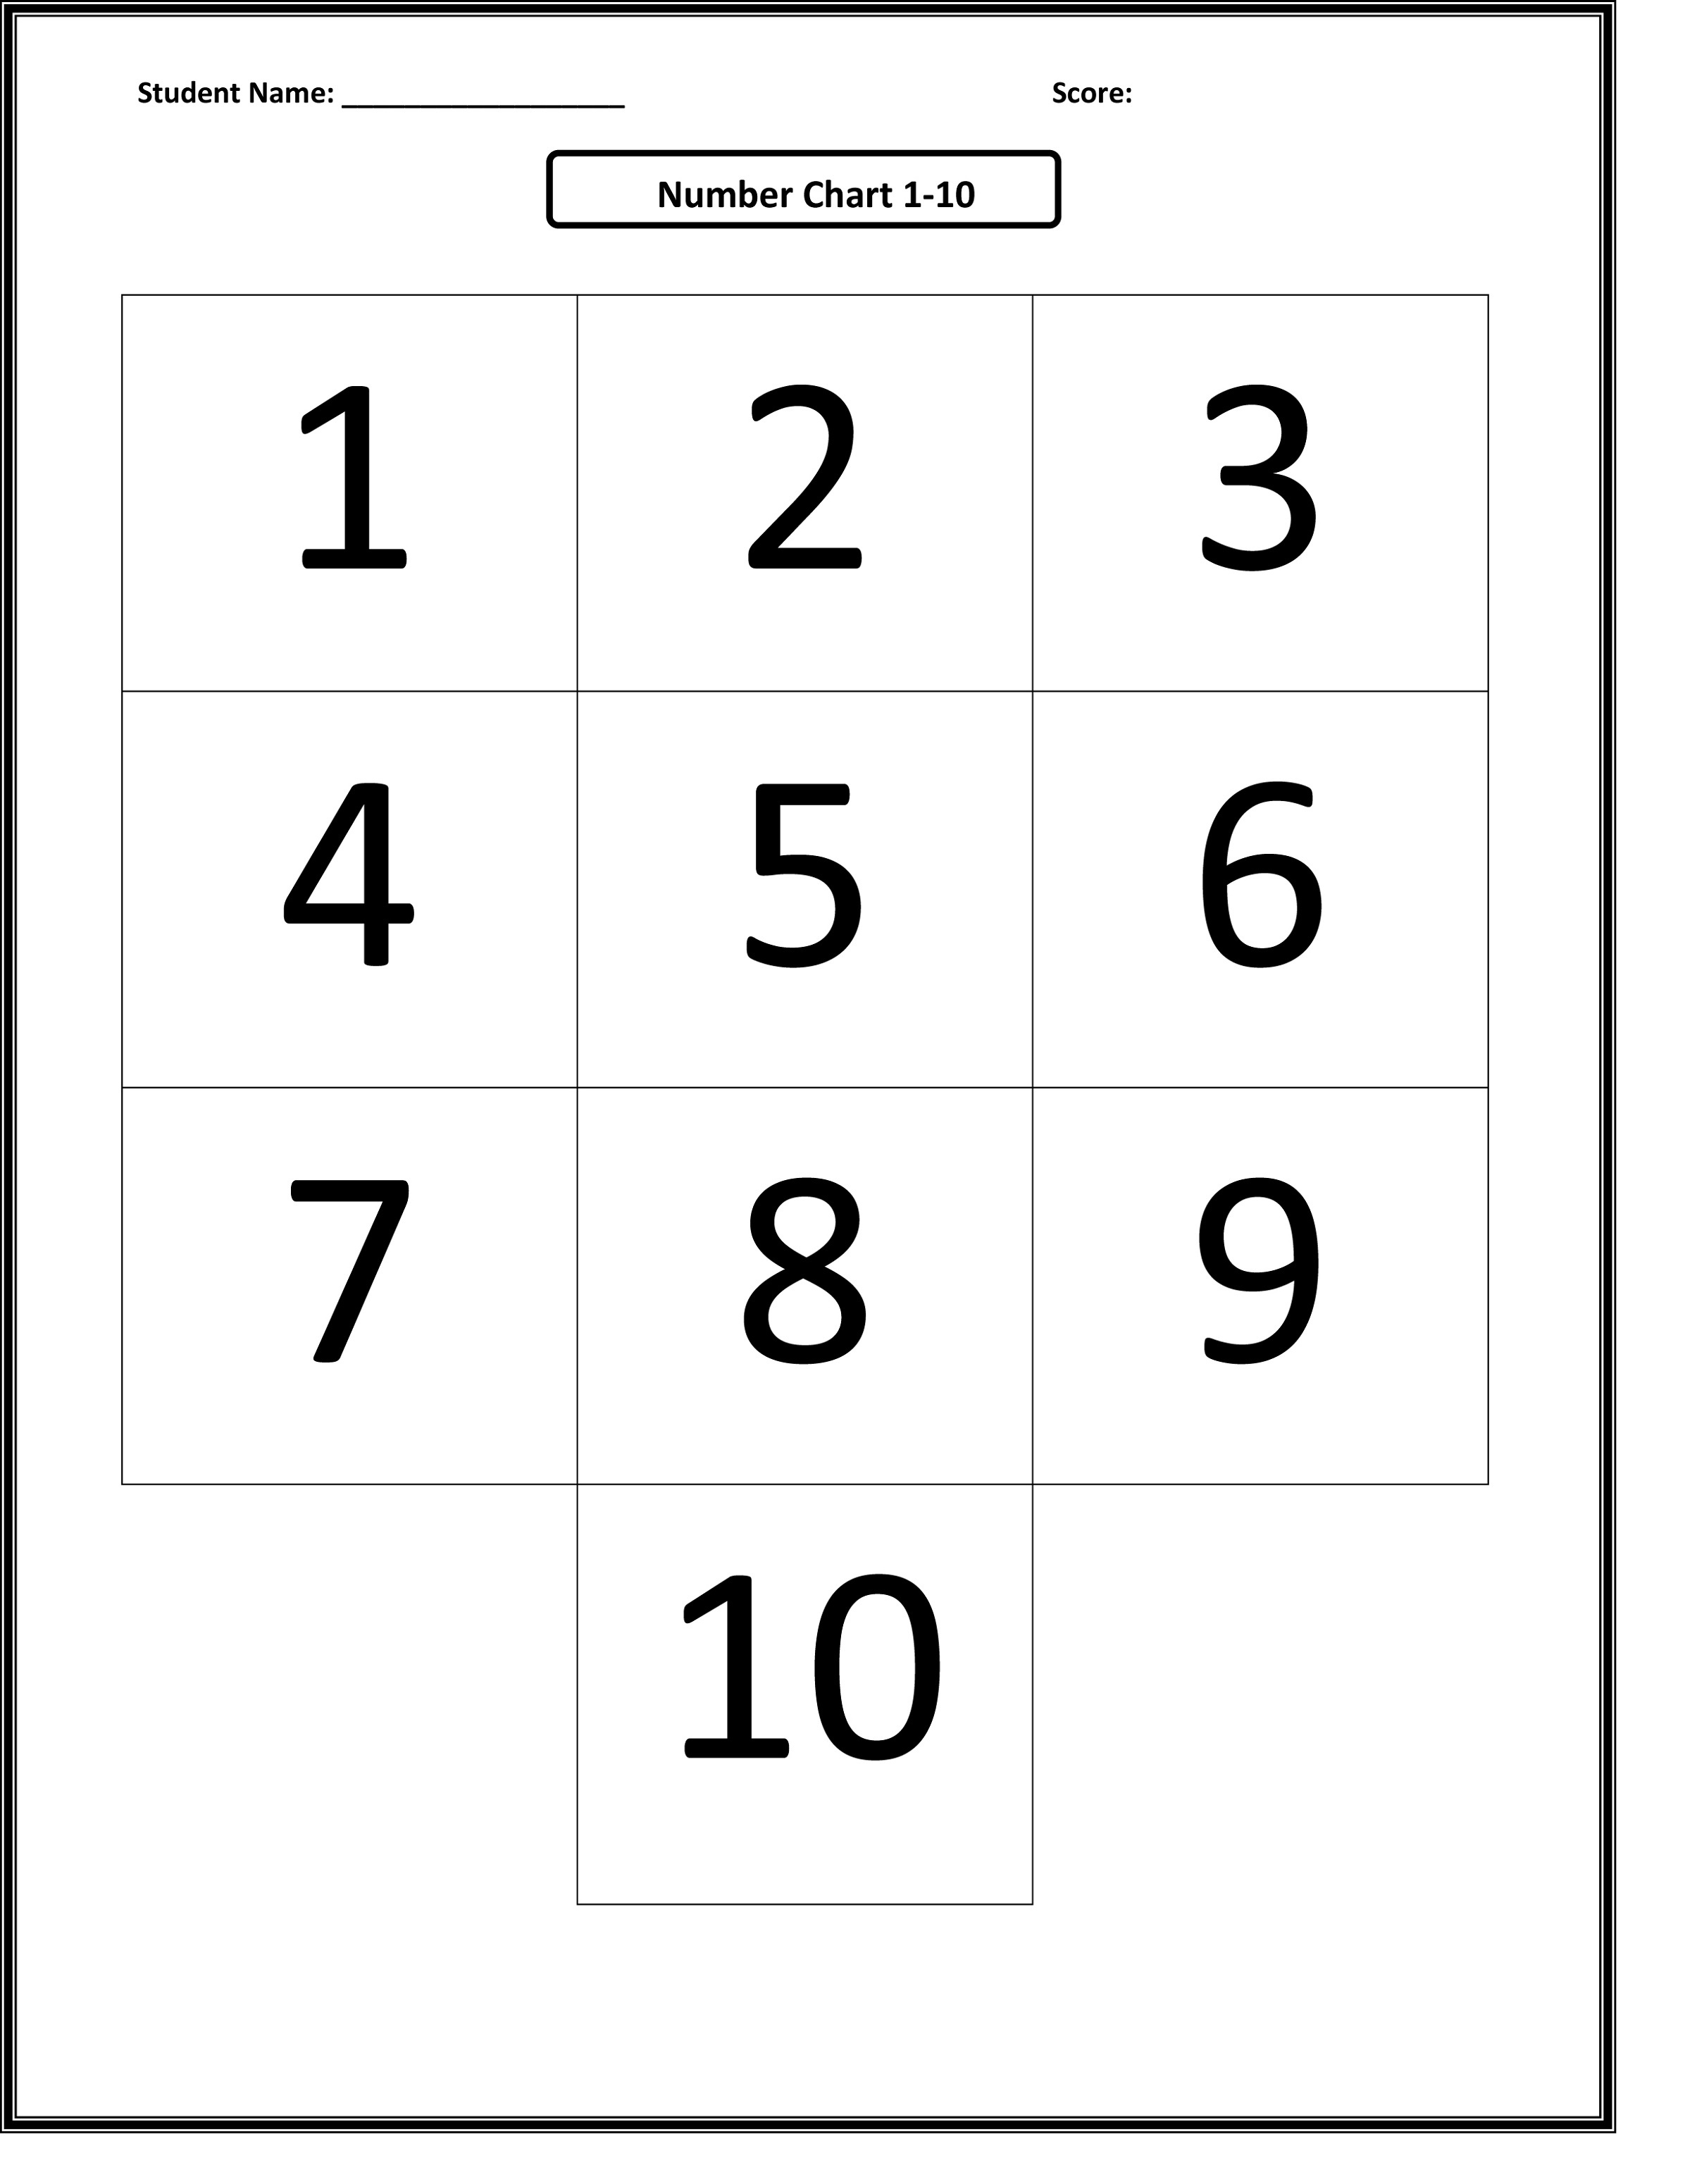 Printable Number Charts 1-10   Activity Shelter - Free Printable Number Chart 1 10